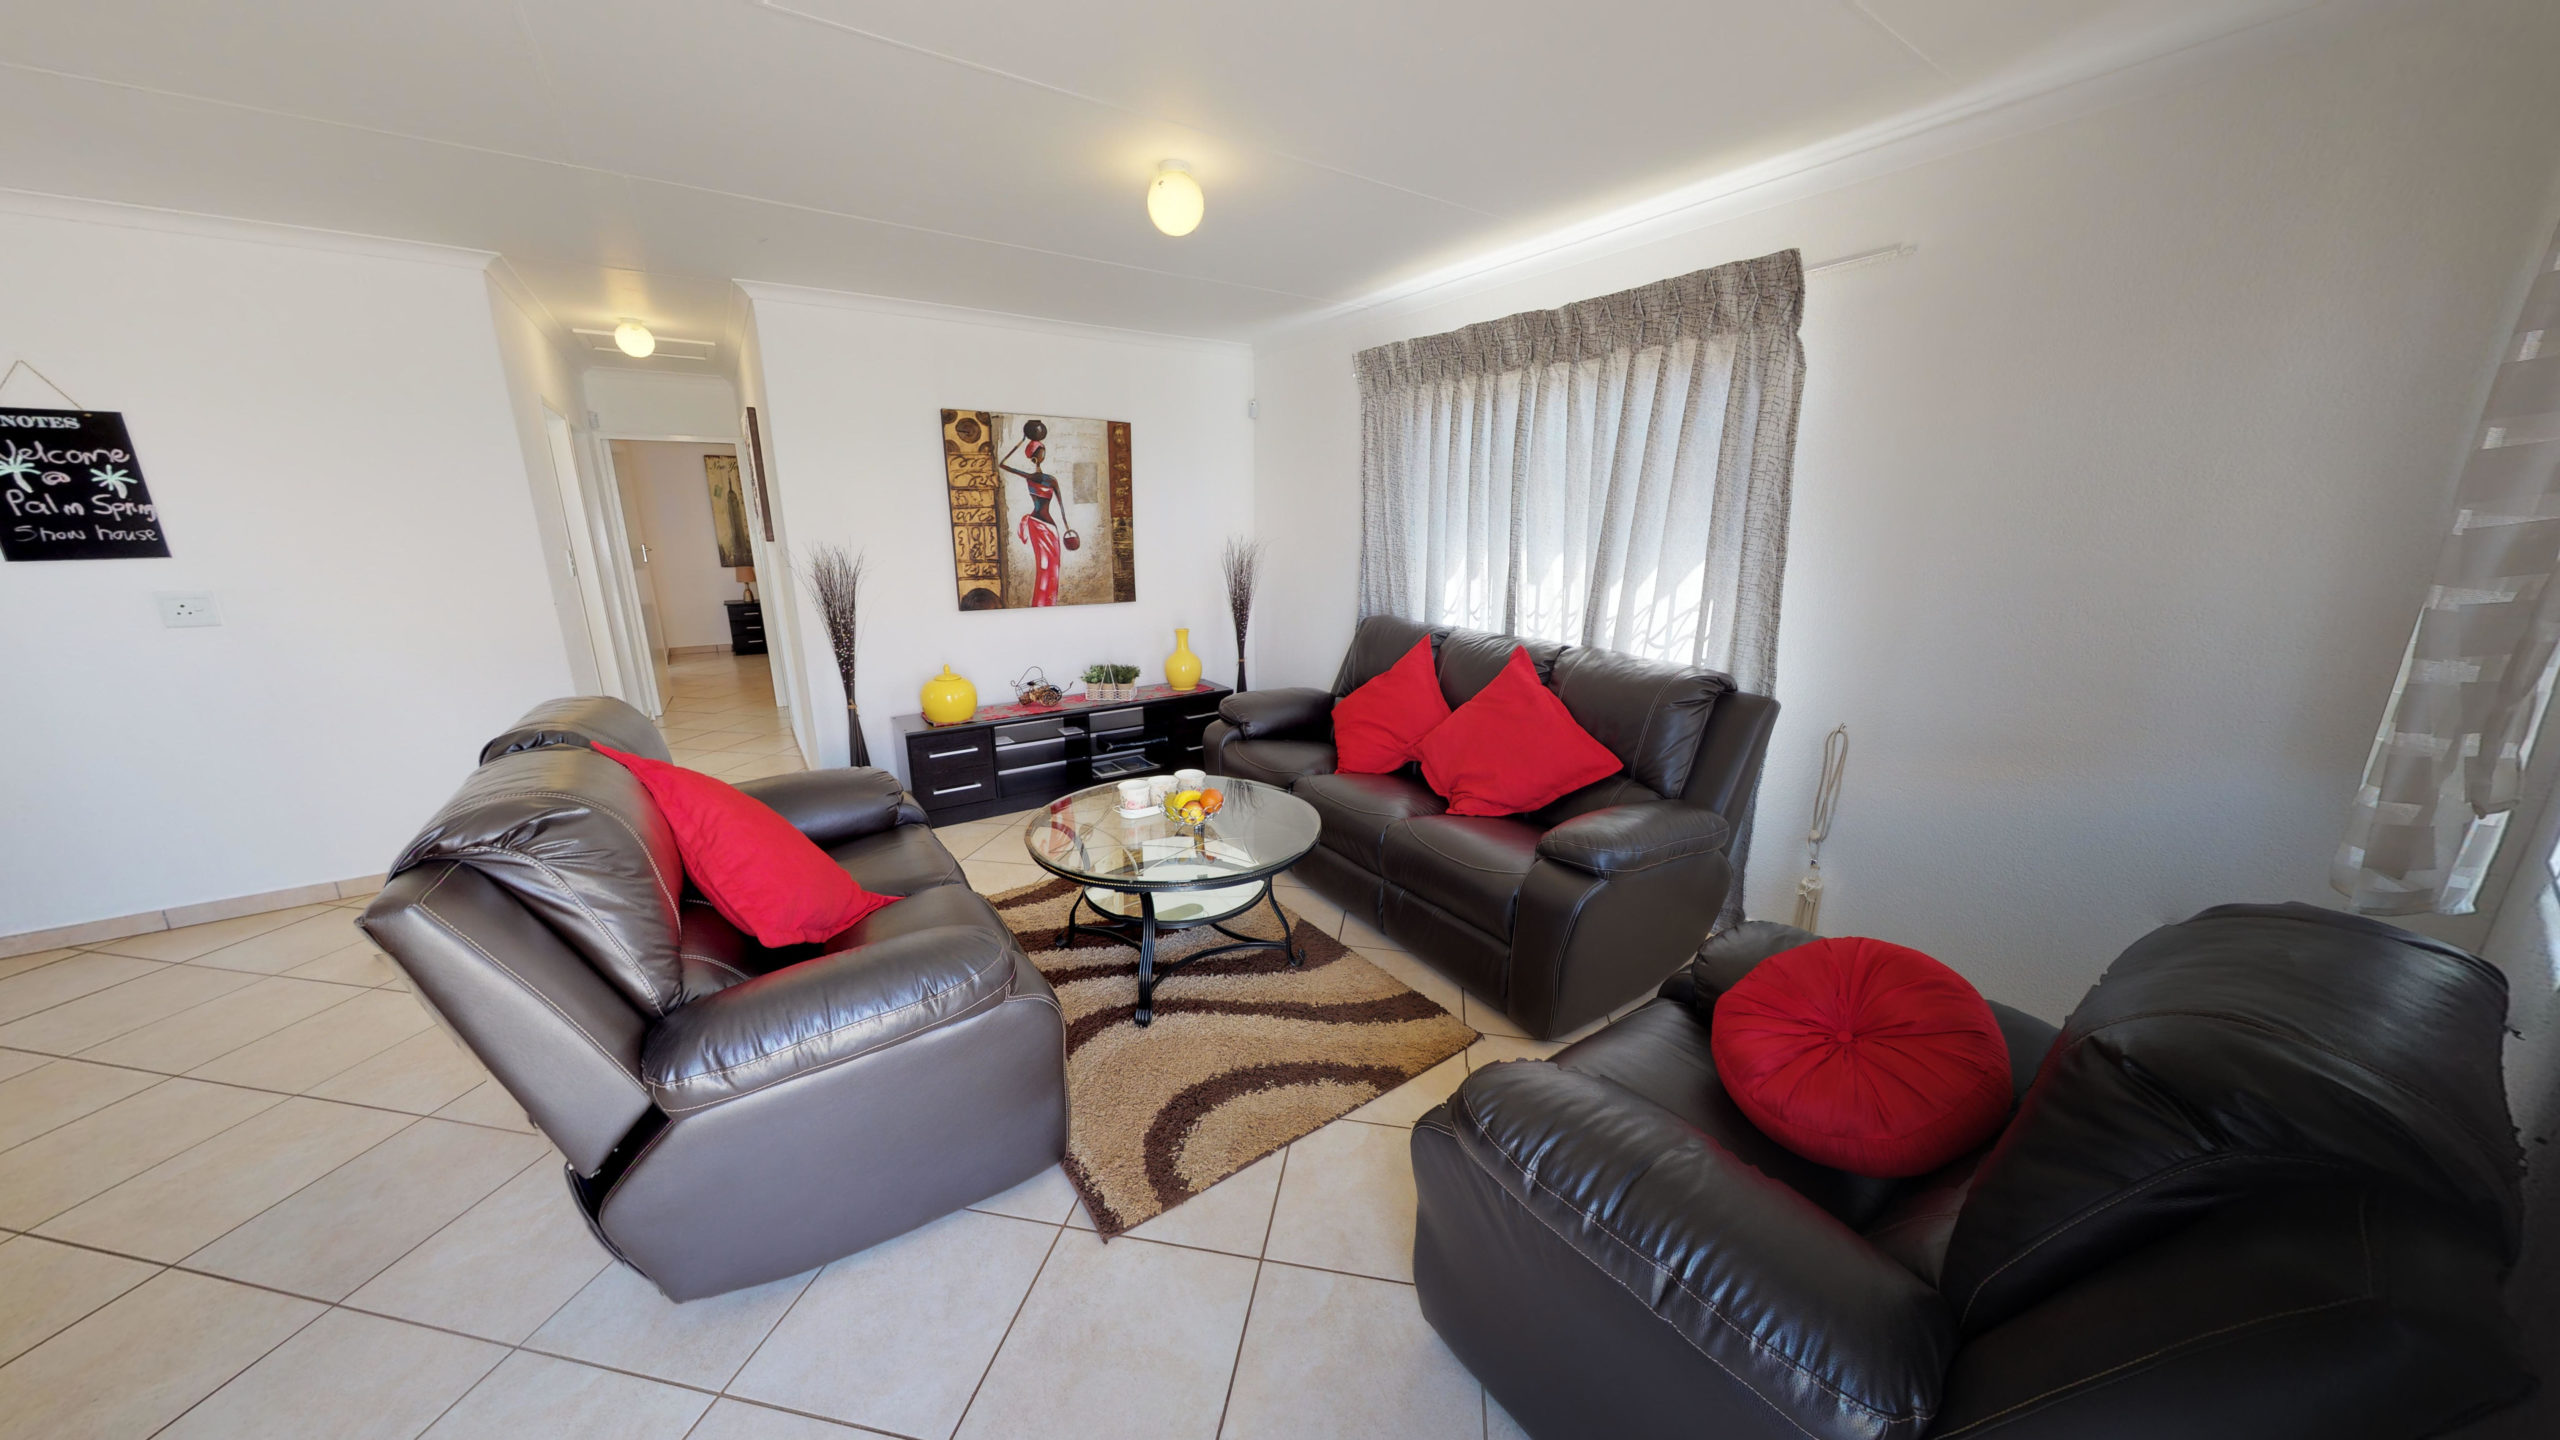 Palm Springs, Homes for Sale in Stretford, Gauteng - Lounge